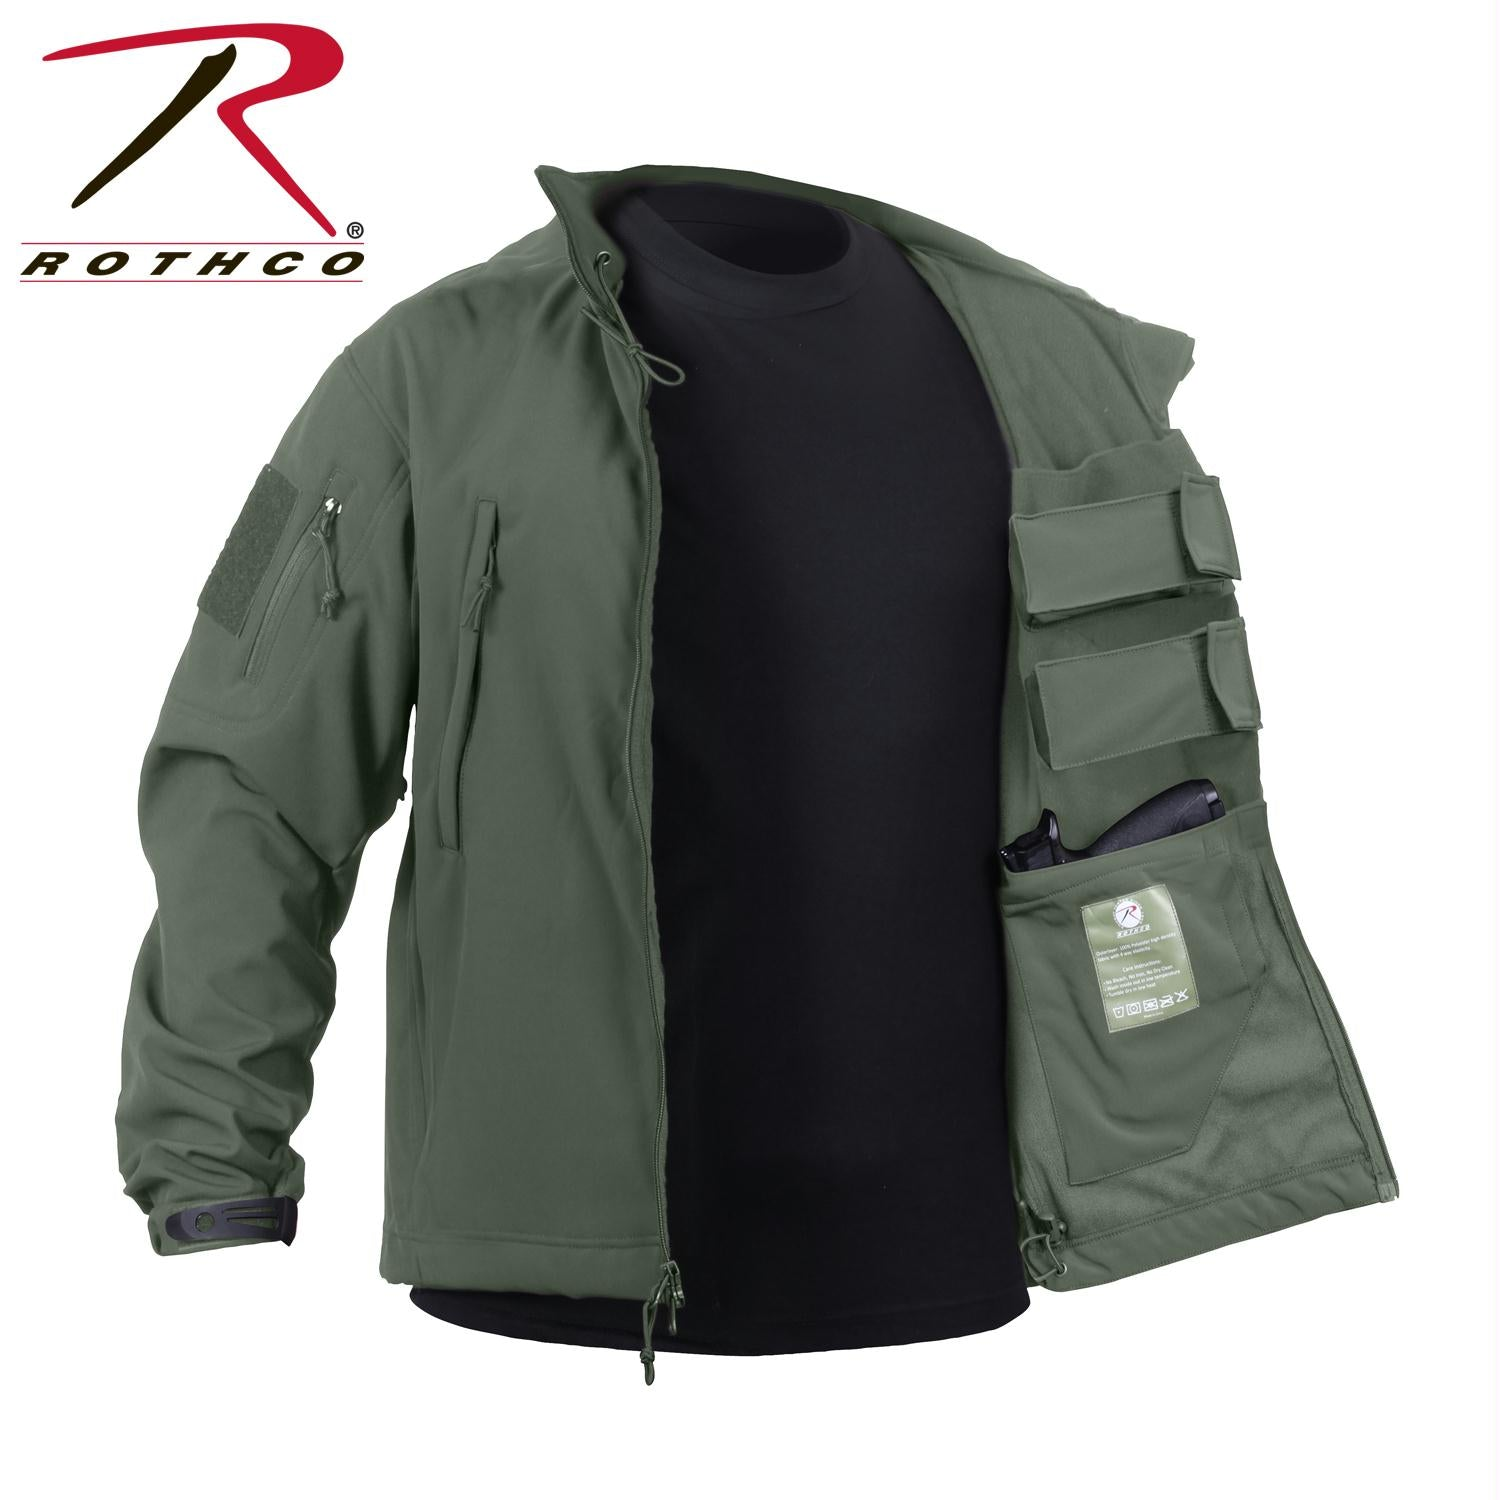 Rothco Concealed Carry Soft Shell Jacket - Olive Drab / 3XL